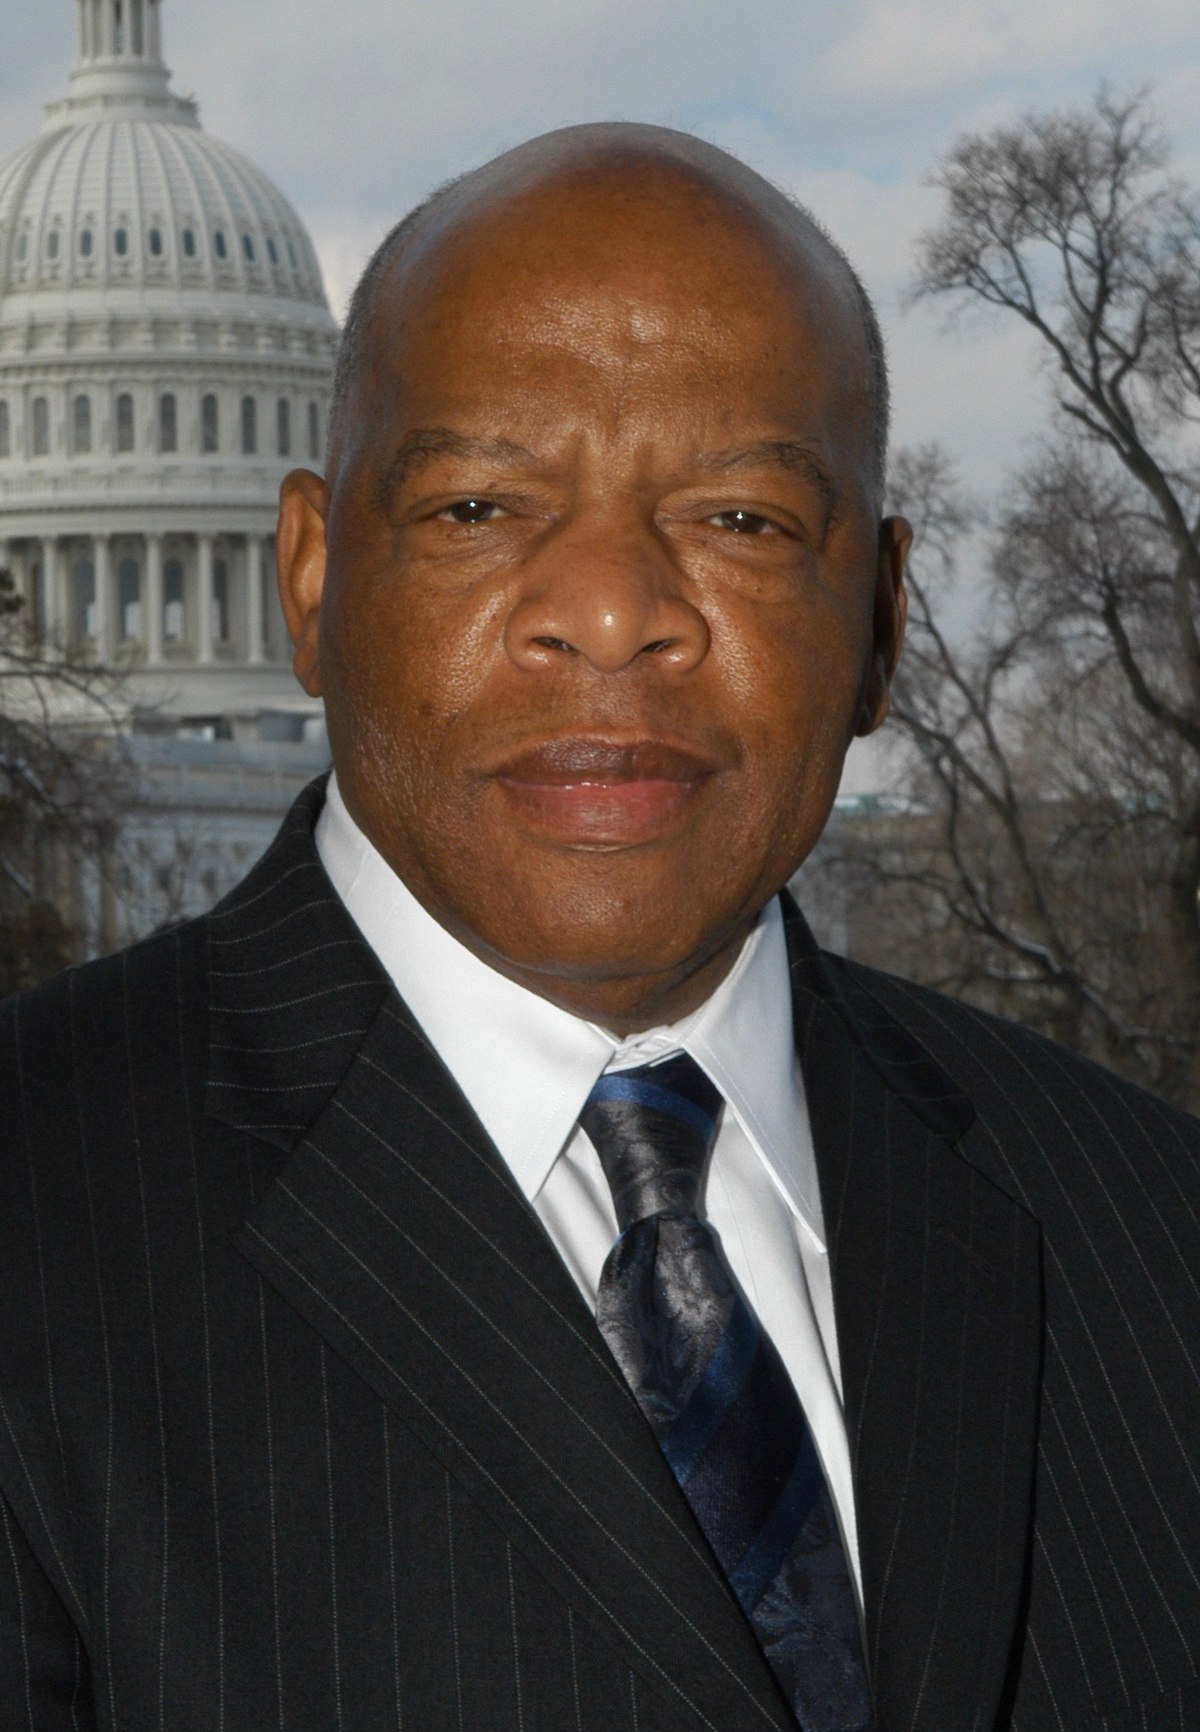 John lewis civil rights leader wikipedia solutioingenieria